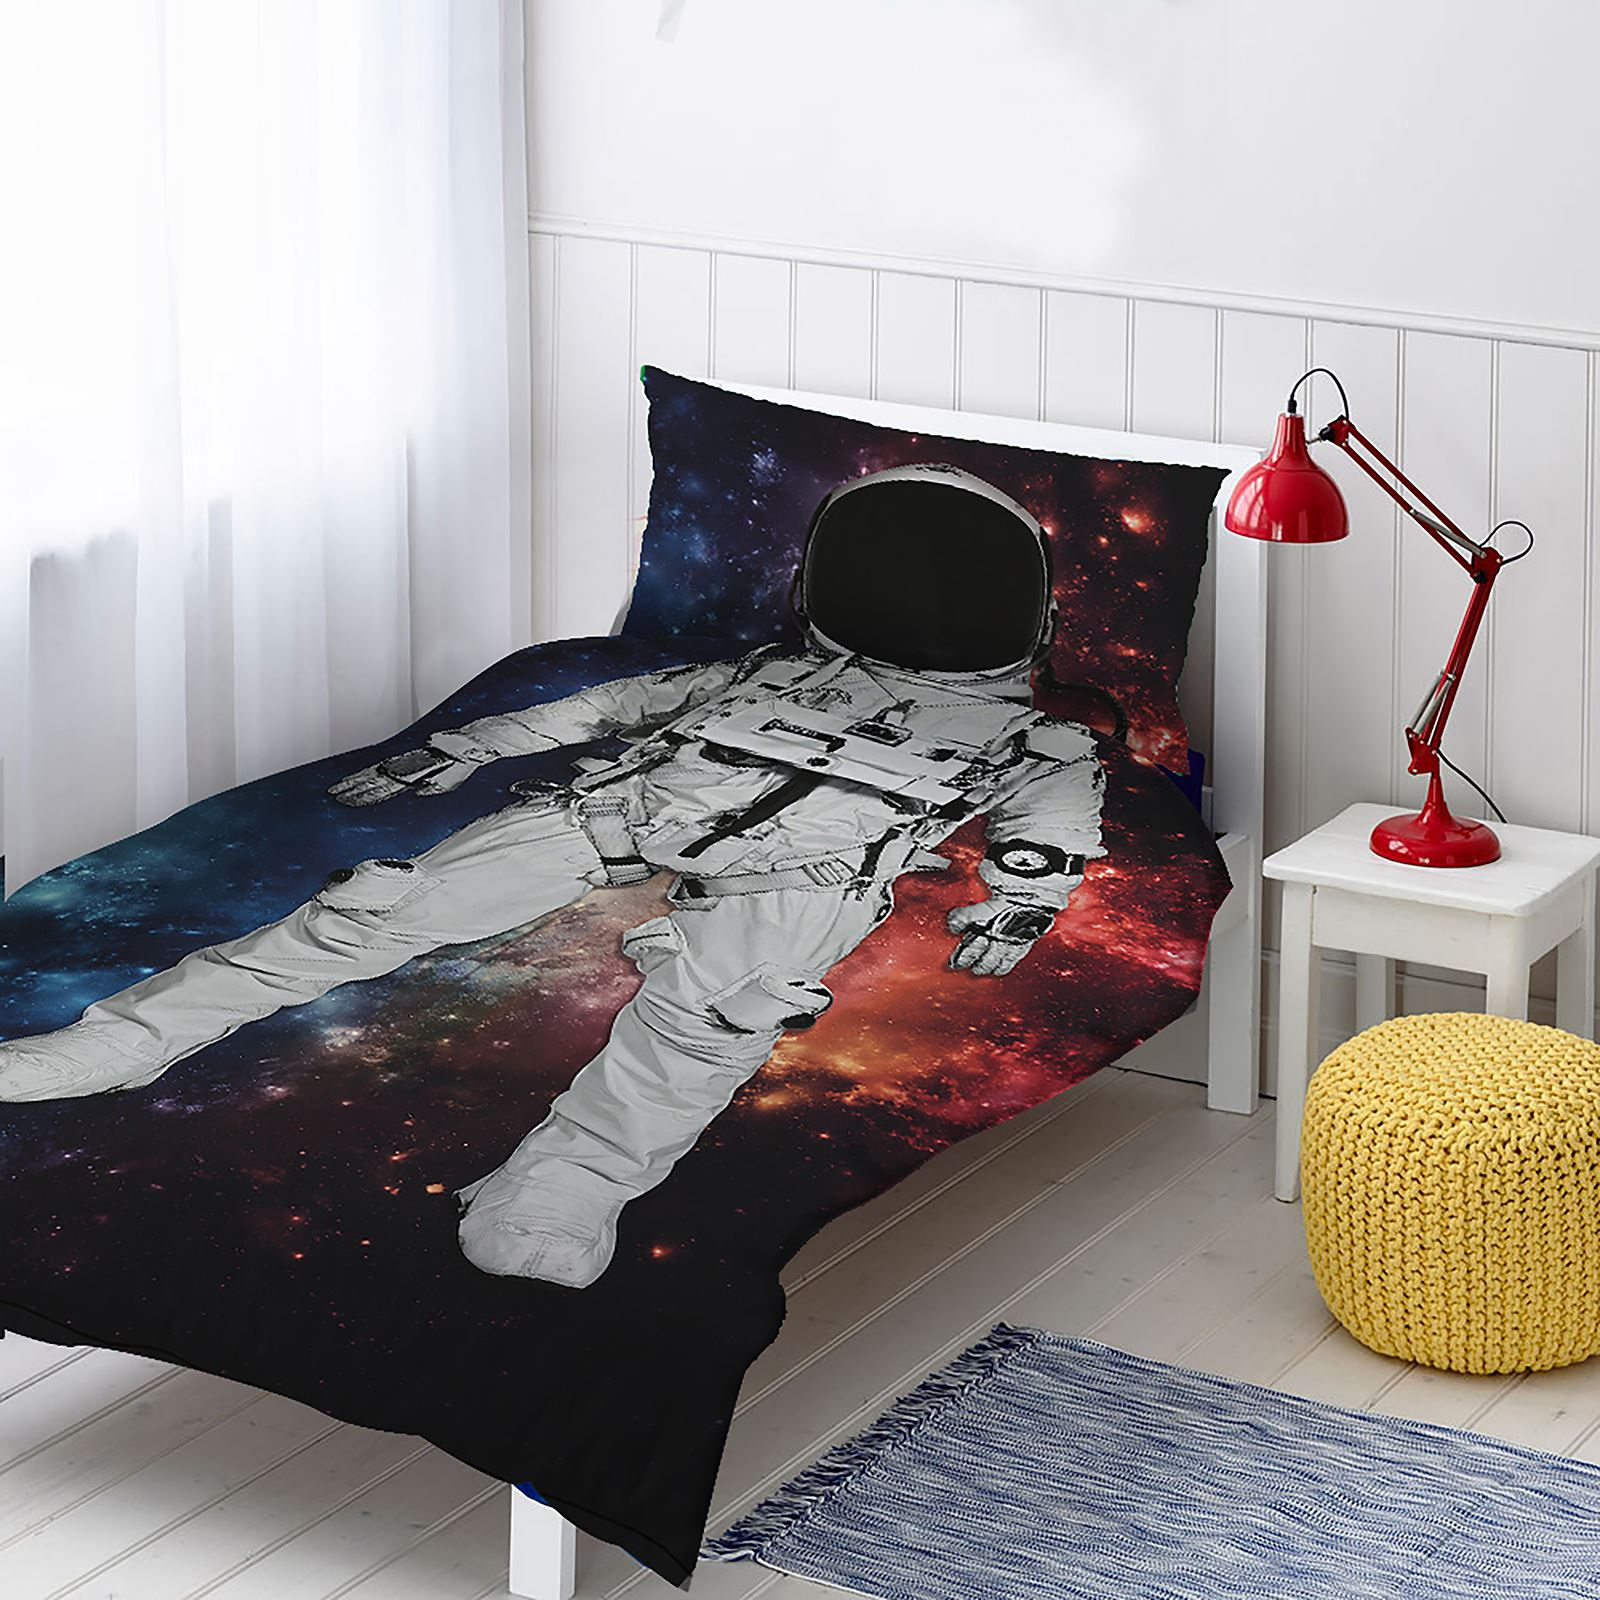 einzel bettw sche sets 100 baumwolle jungen m dchen tiere sport st dte ebay. Black Bedroom Furniture Sets. Home Design Ideas